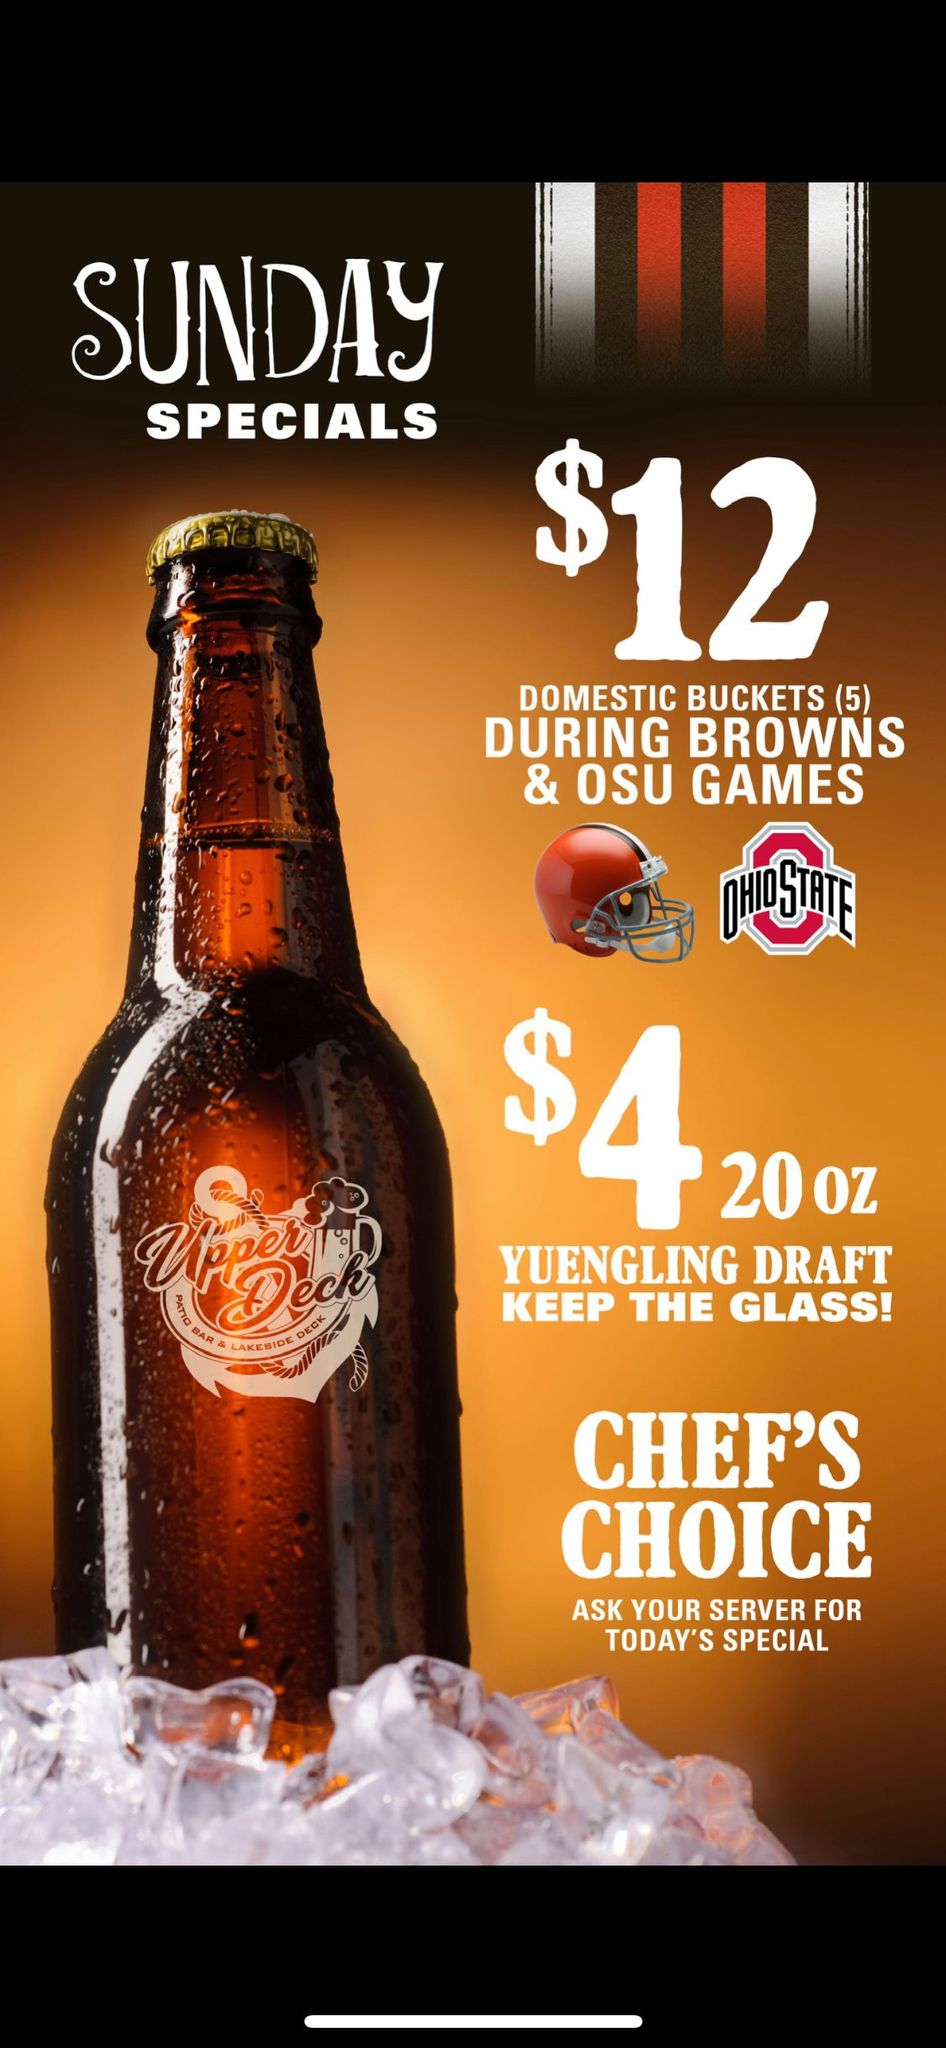 Game Day Drink Specials!